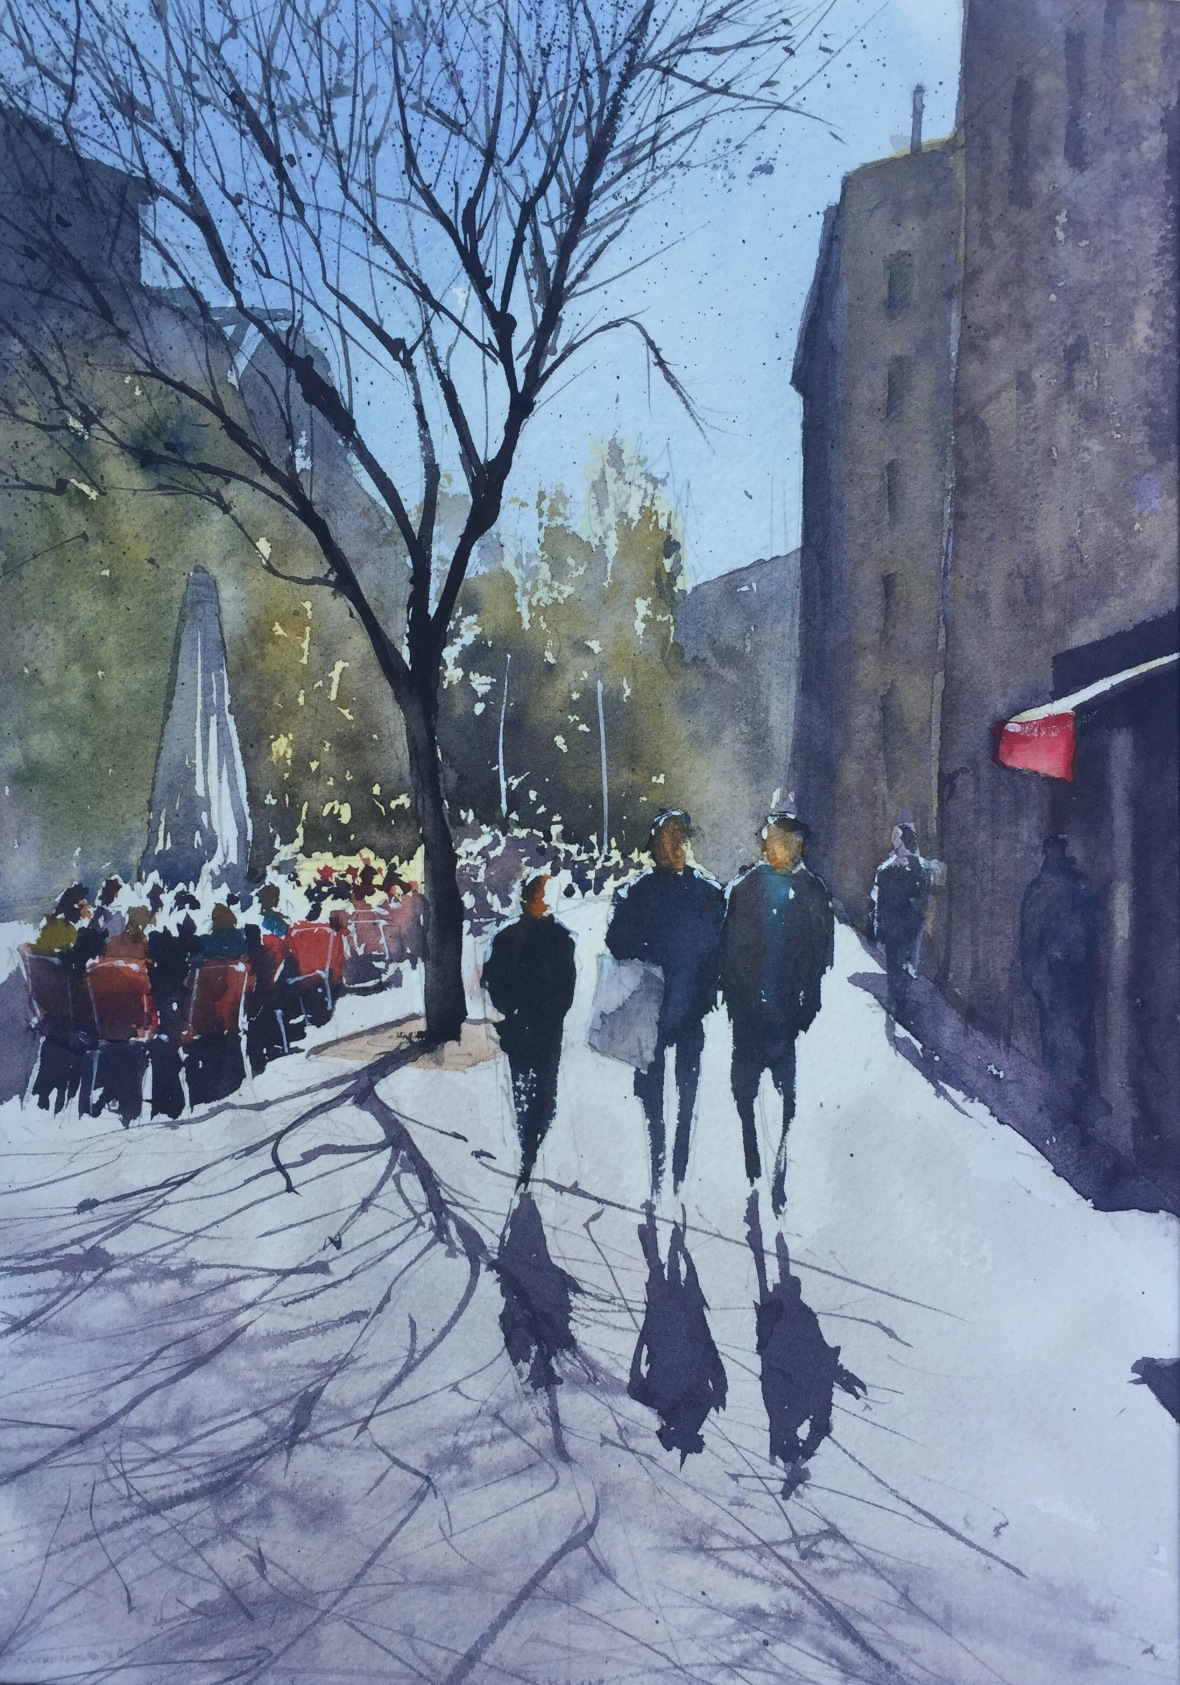 A watercolour painting by John Haywood of a street scene in Barcelona